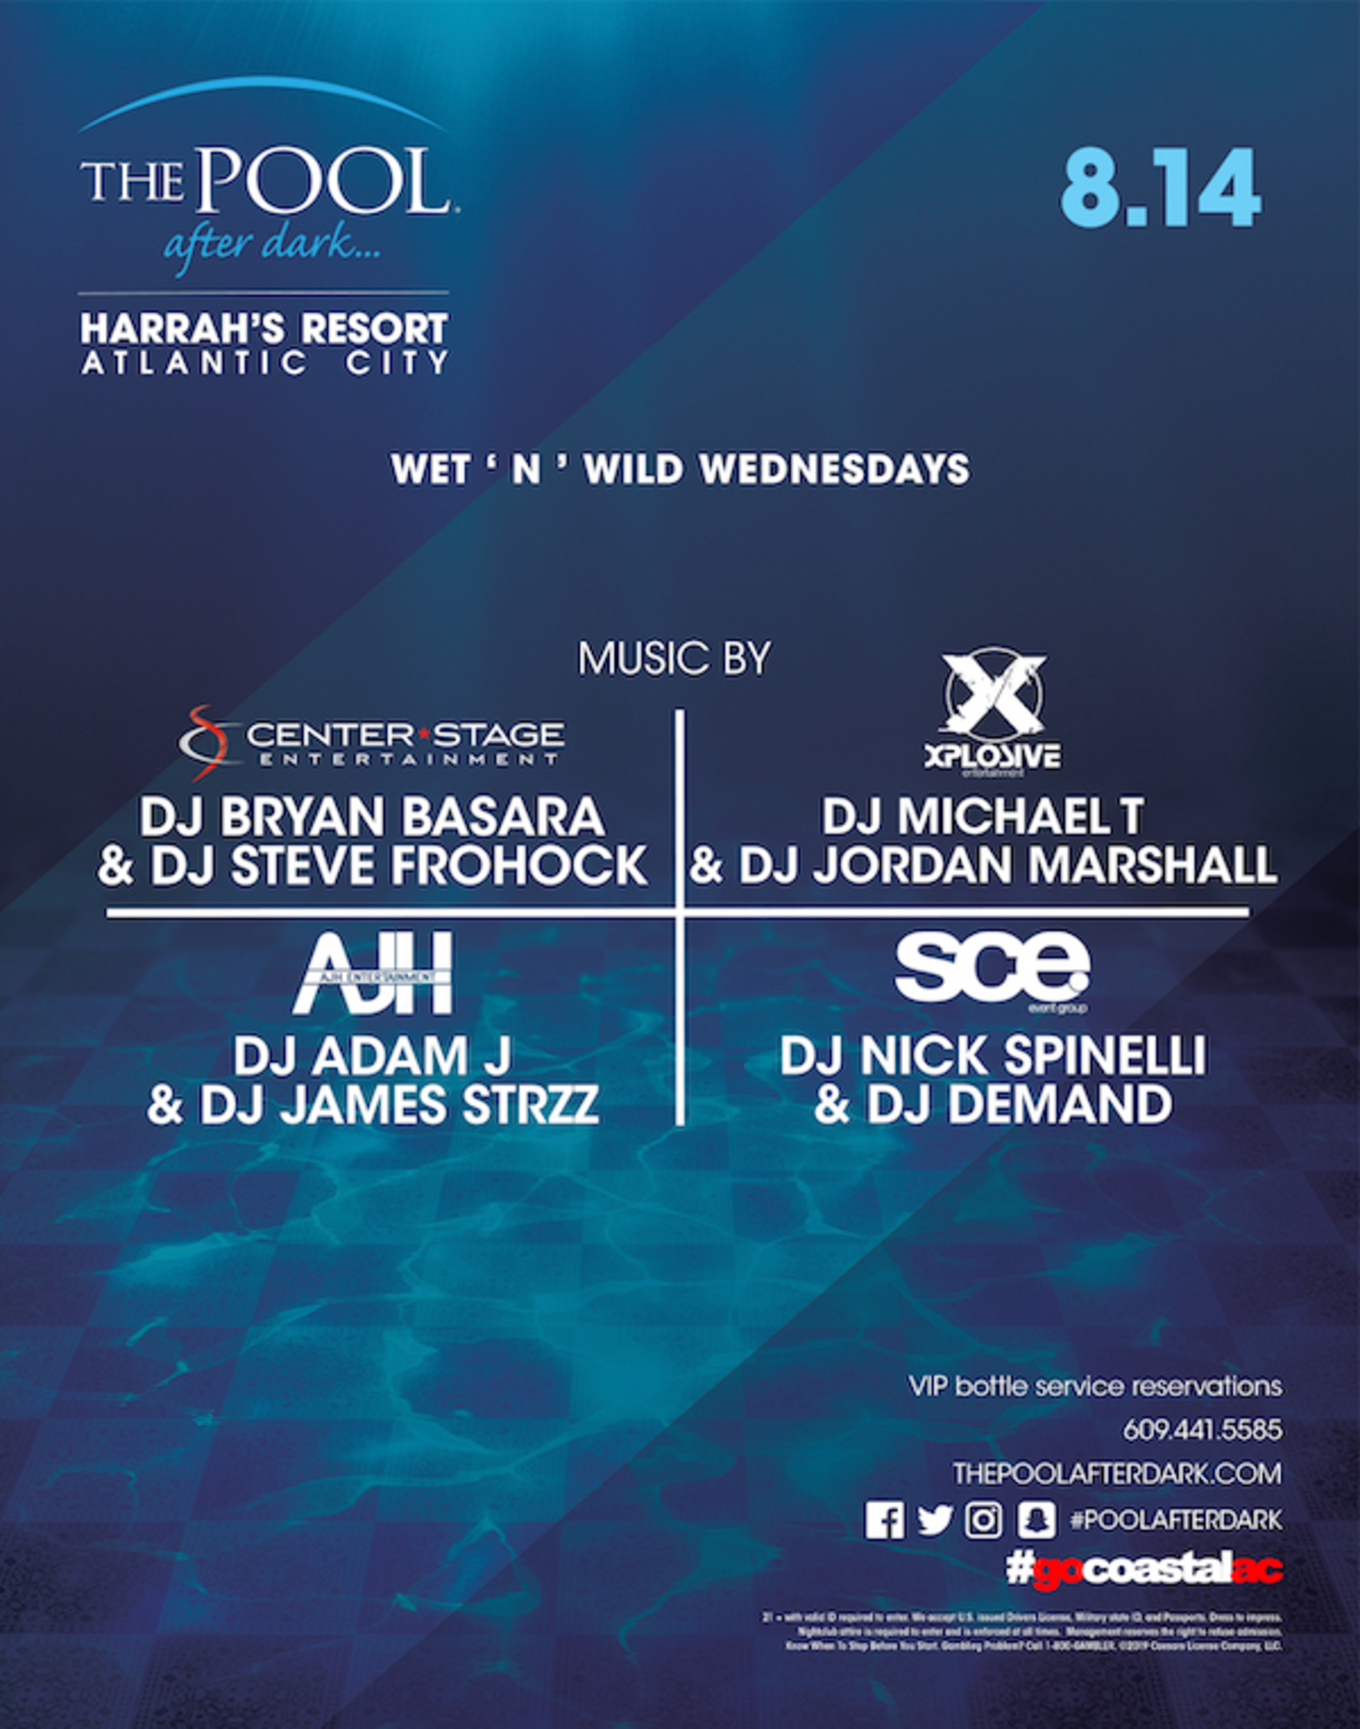 AC's Official Industry Party - Wet 'N' Wild Wednesdays at The Pool